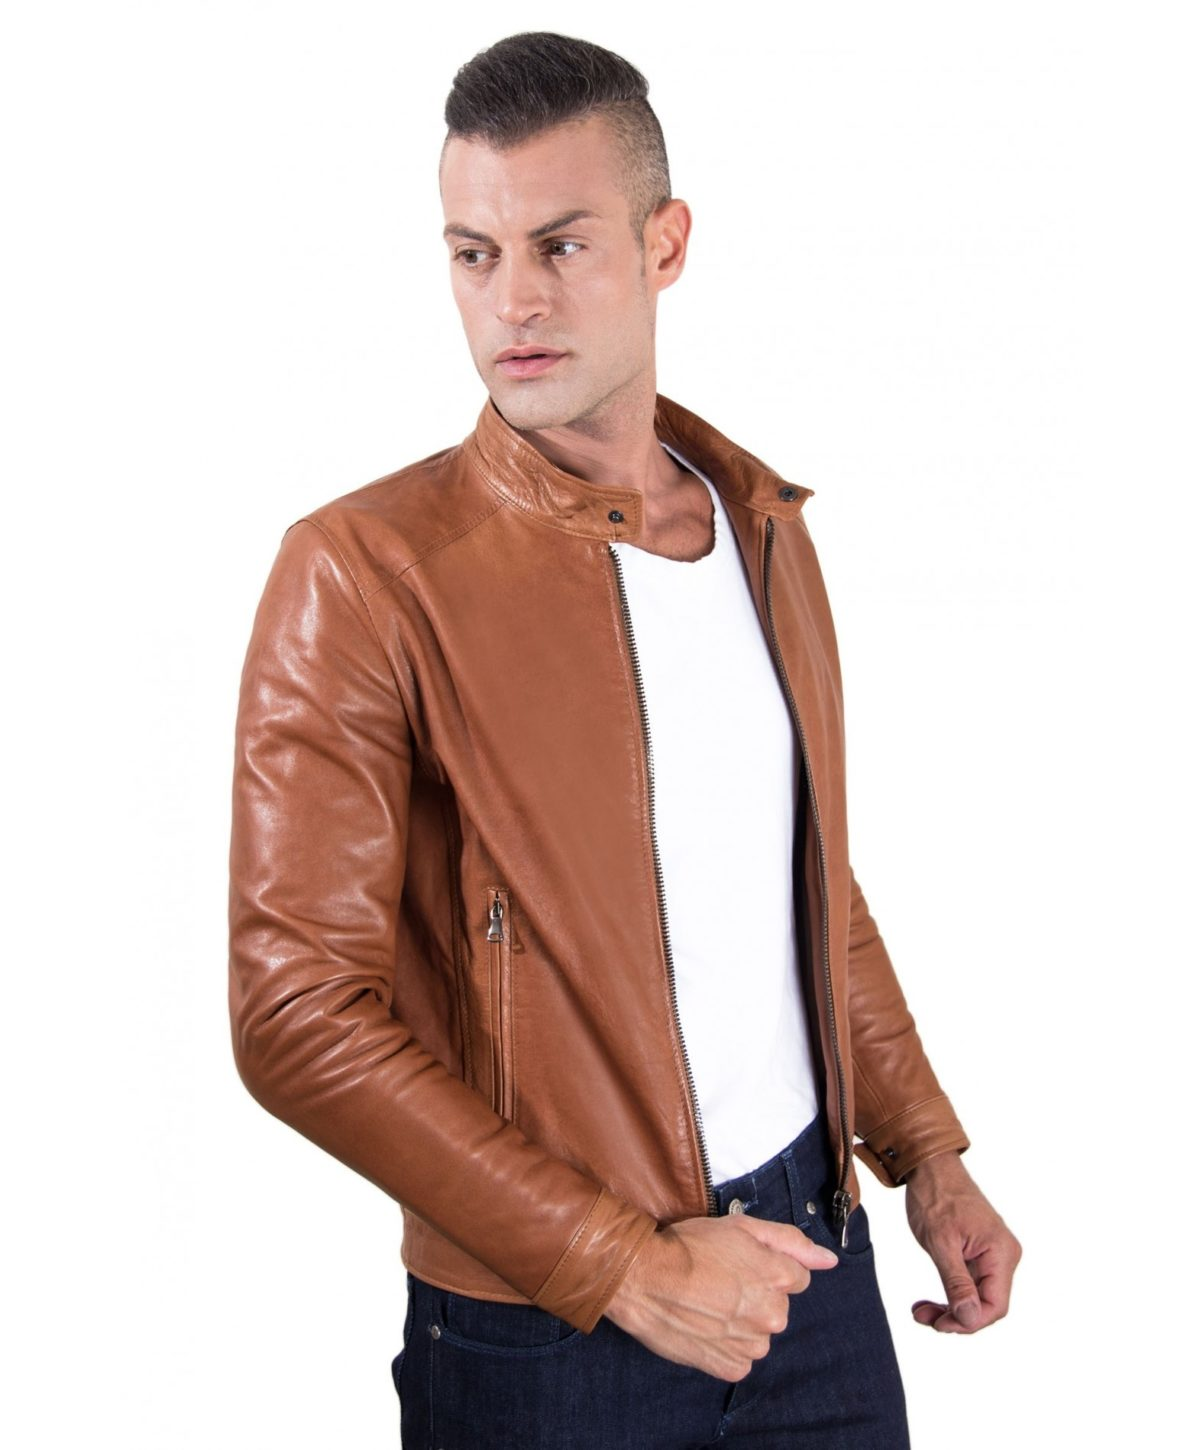 men-s-leather-jacket-korean-collar-two-pockets-tan-color-hamilton (2)